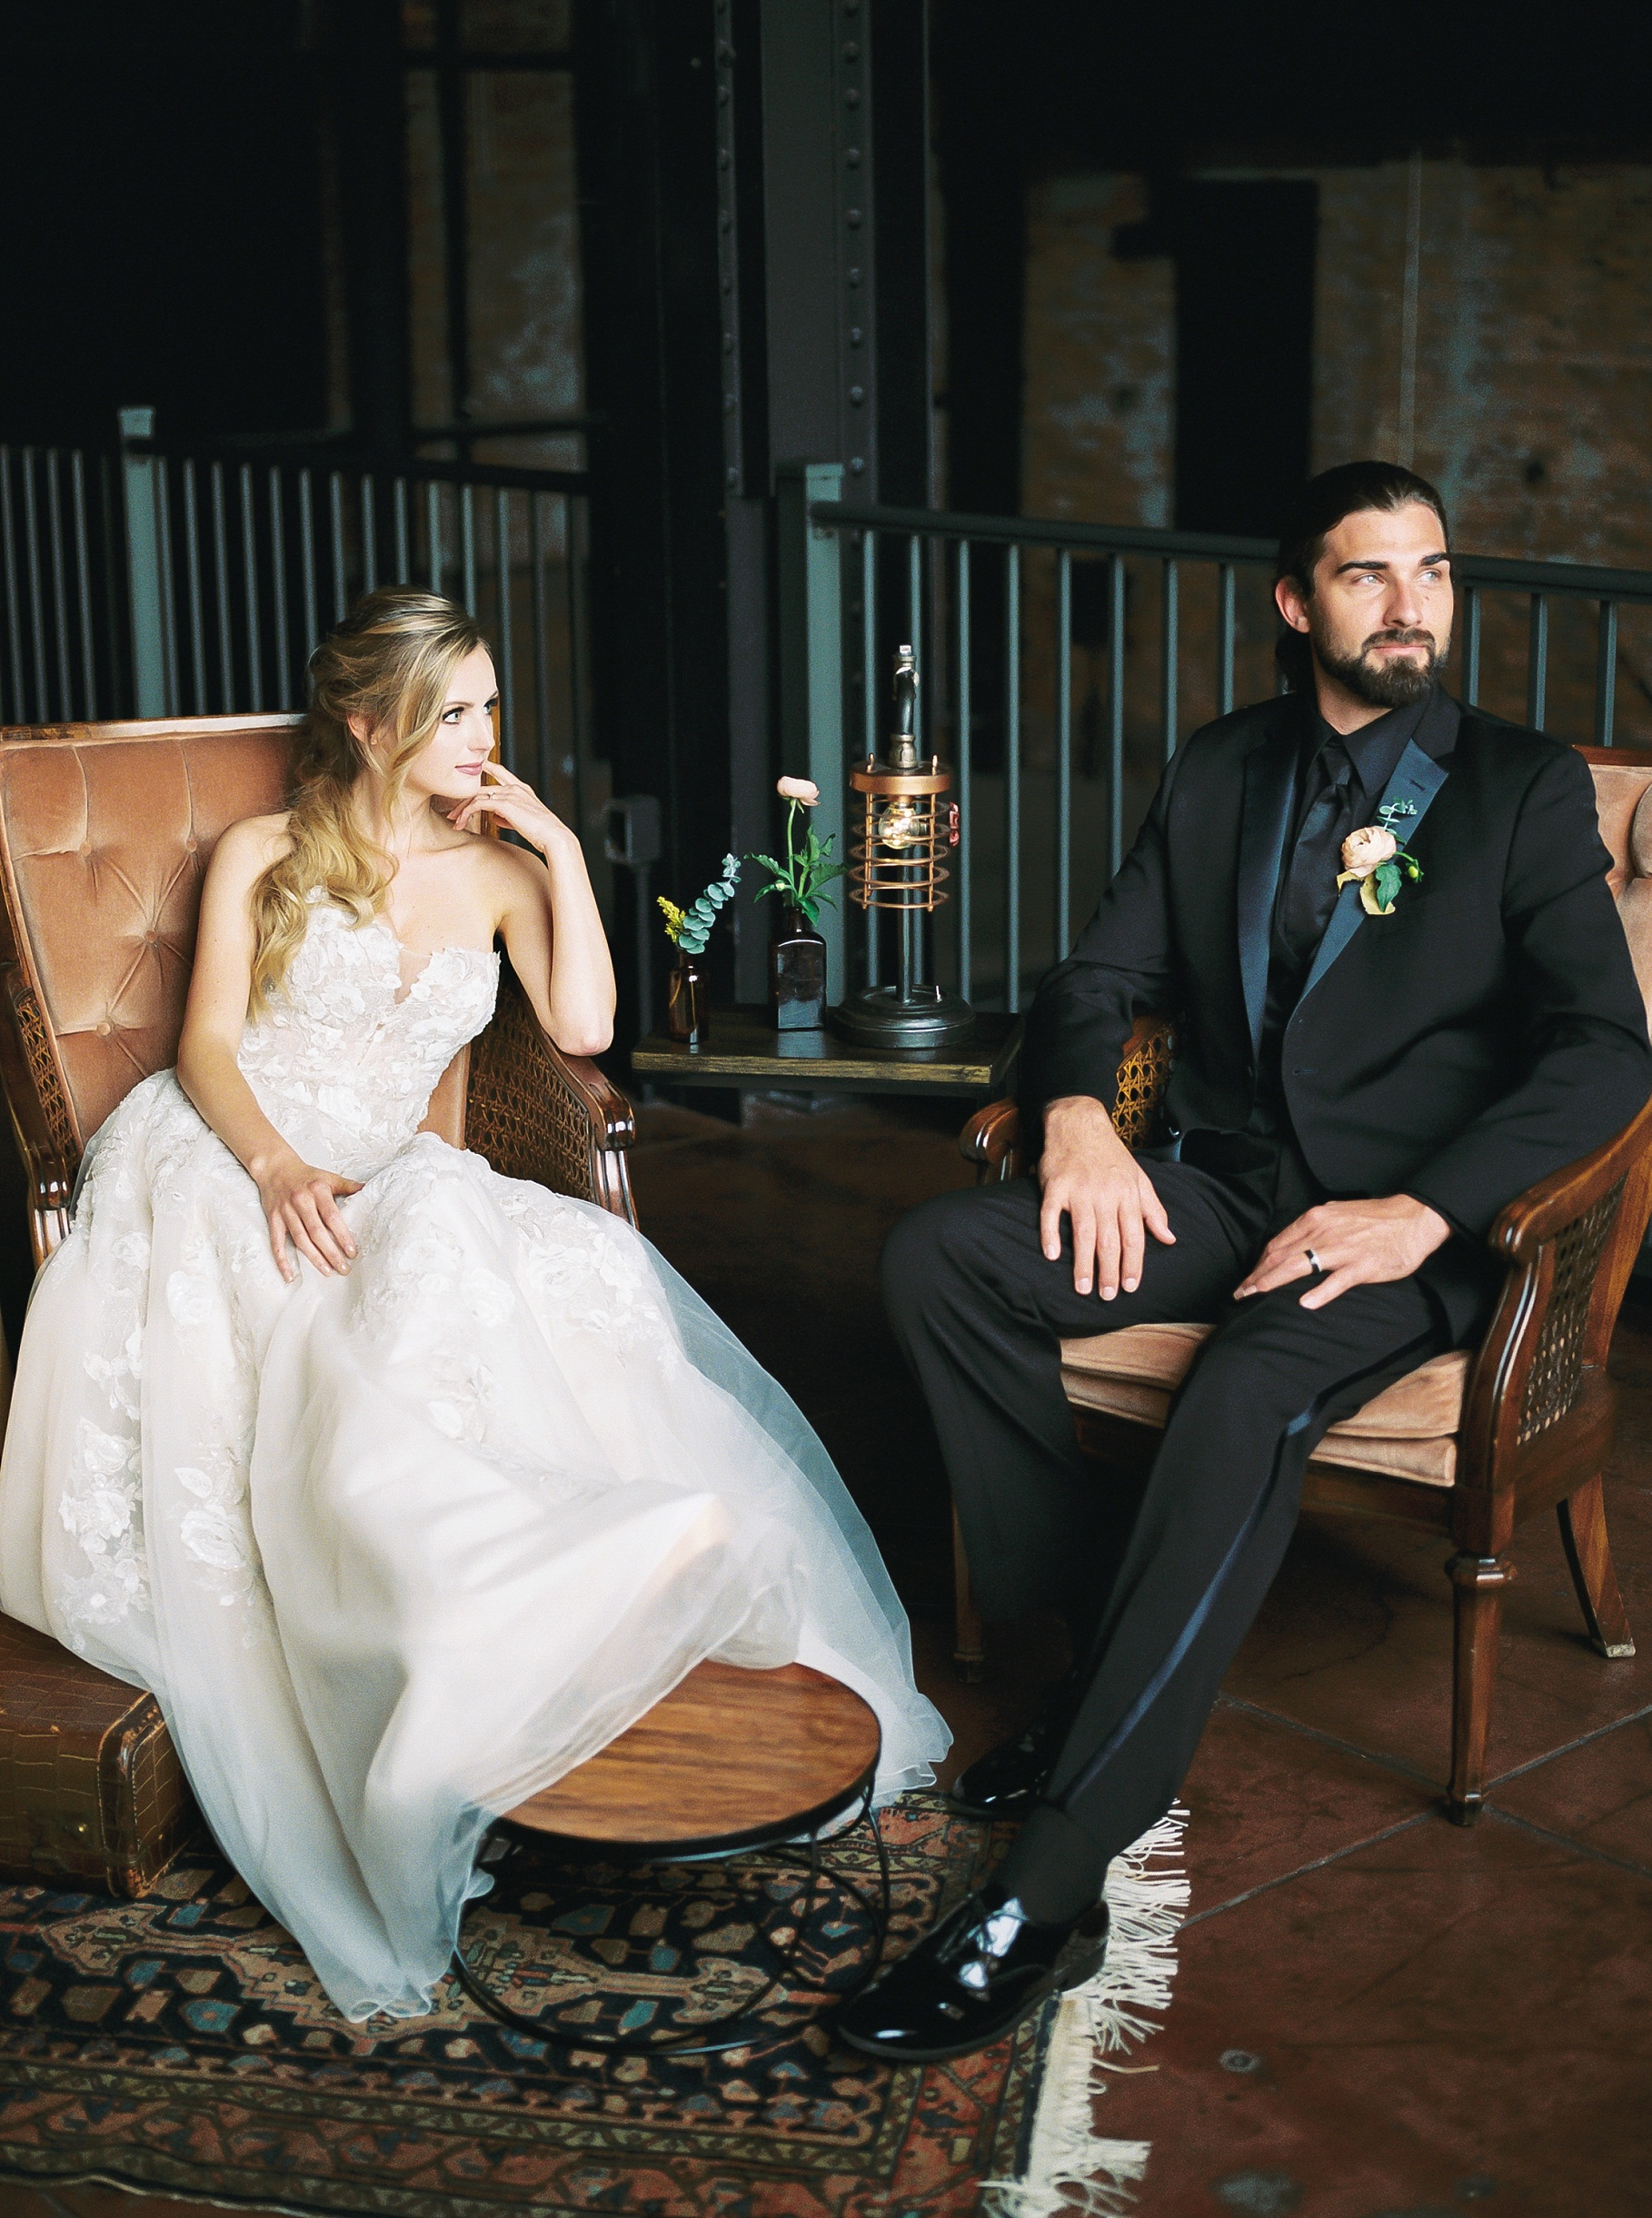 Urban Romance Wedding with Copper Accents at The Millbottom by Kelsi Kliethermes Photography Best Columbia Missouri Wedding Photographer_0048.jpg